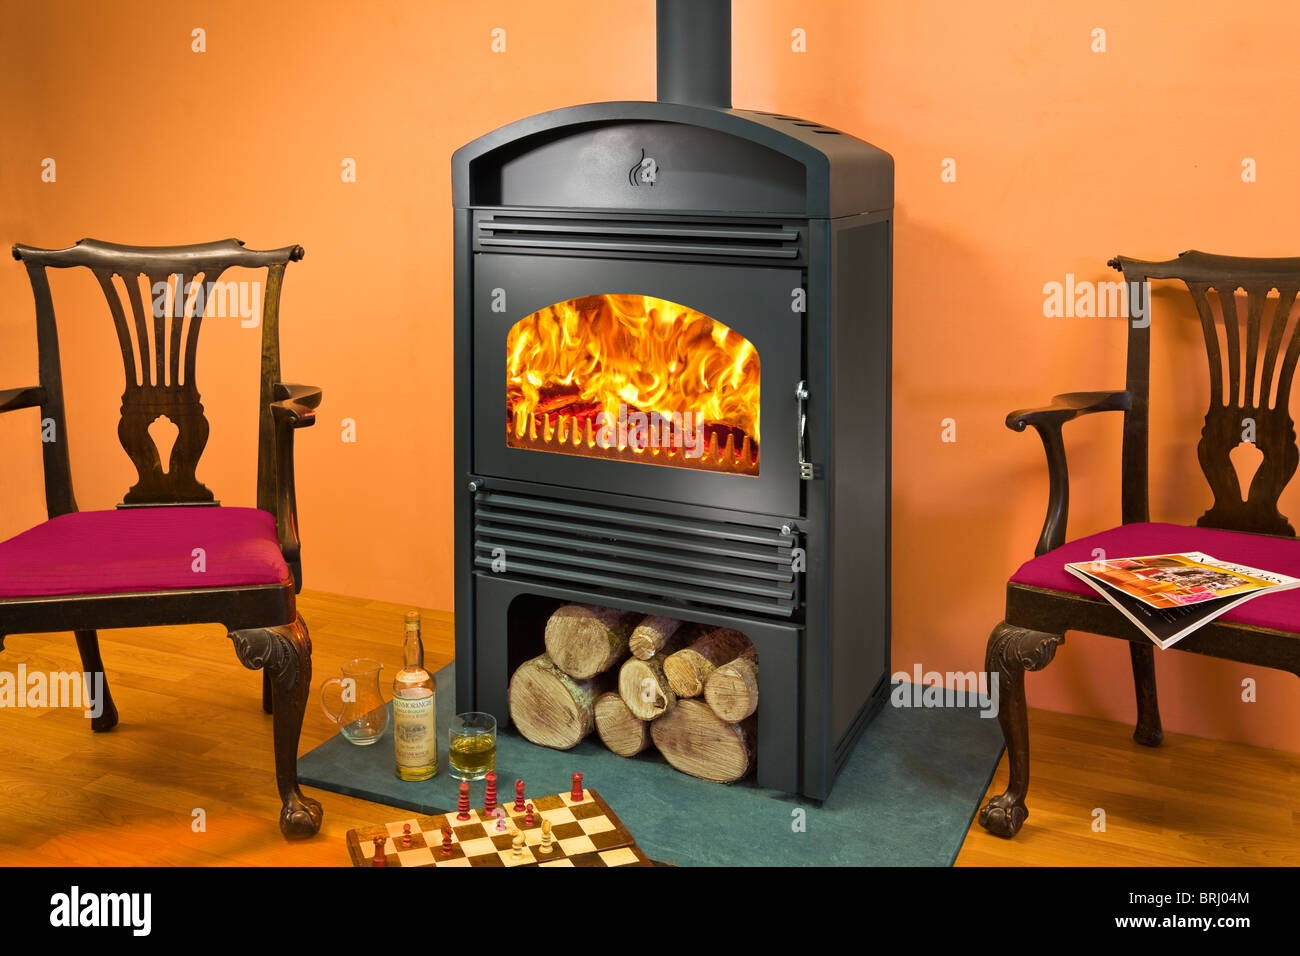 A Woodfire C18 wood burning stove with log store below - Stock Image